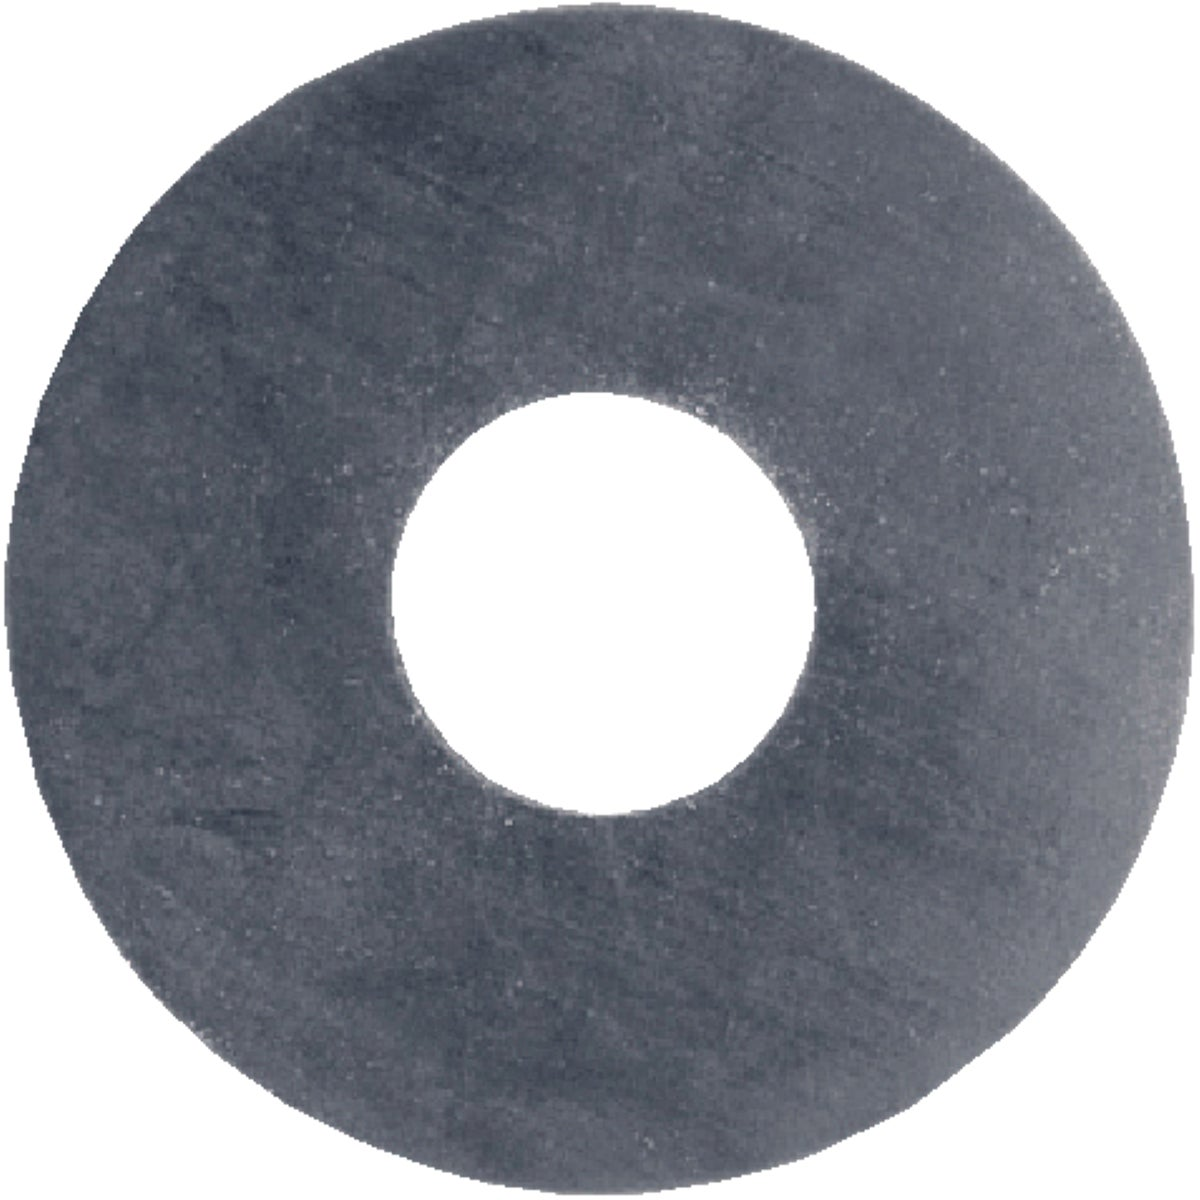 RUBBER BIBB GASKET - 35320B by Danco Perfect Match